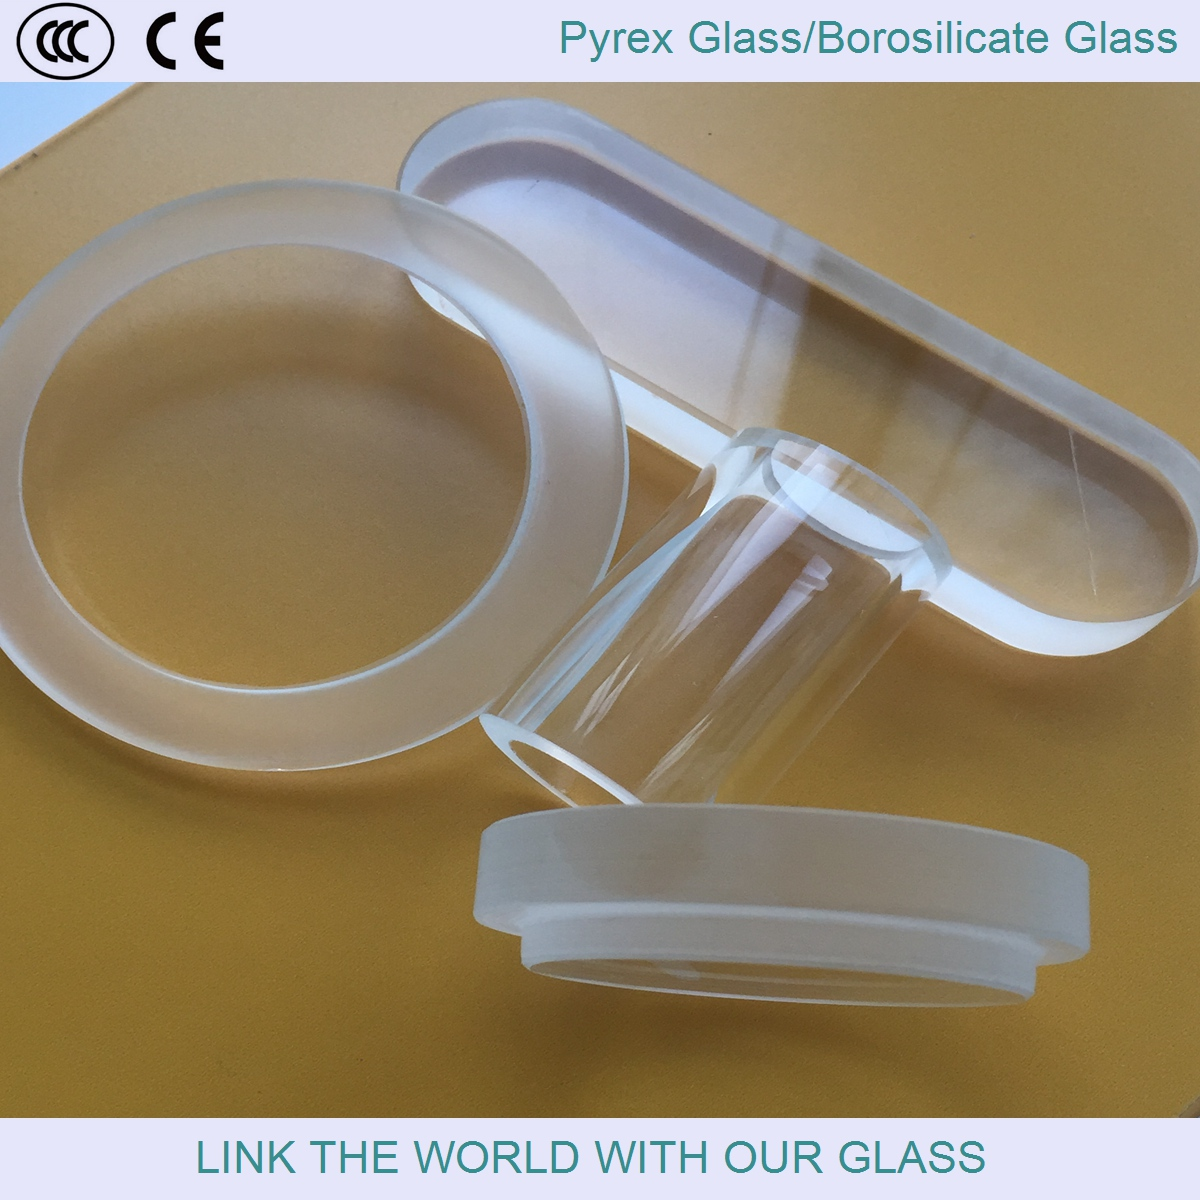 borosilicate glass/pyrex glass/sight glass/heat resistant glass/quartz glass